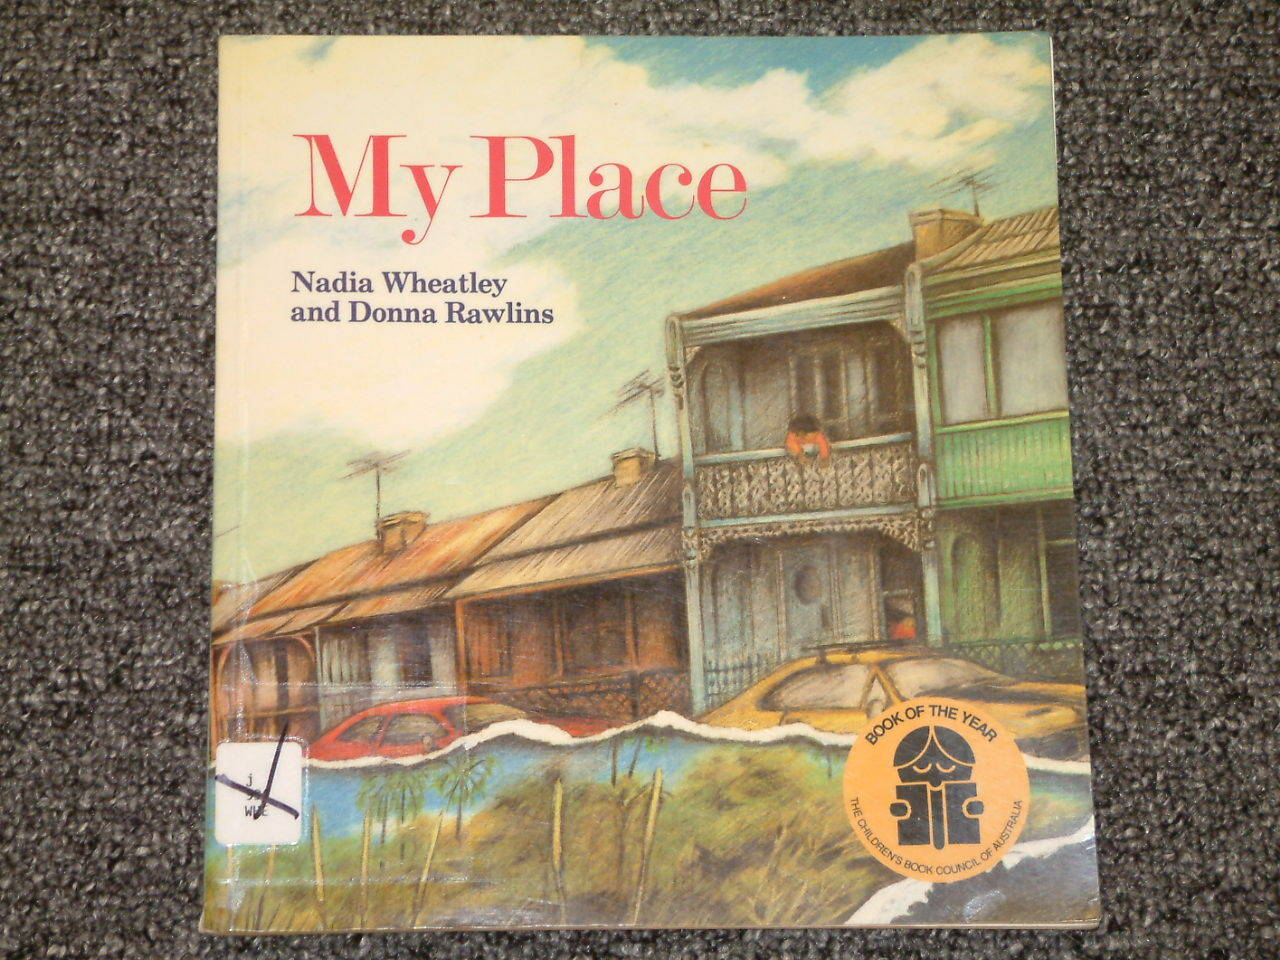 My Place by Nadia Wheatley and Donna Rawlins Australia